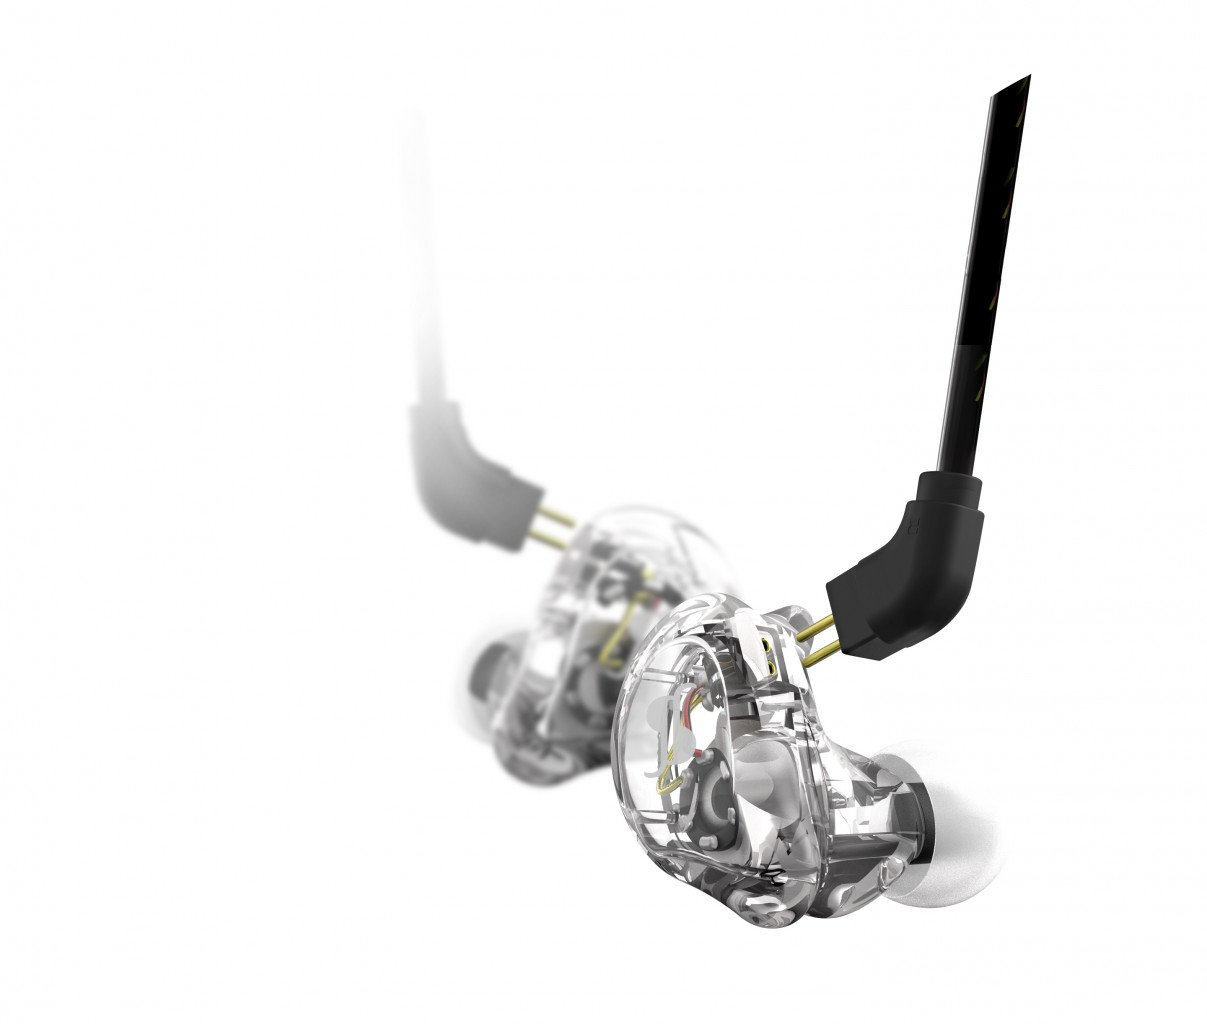 STAGG SPM-235 TR HIGH-RESOLUTION, SOUND-ISOLATING IN-EAR MONITOR, TRANSPARENT